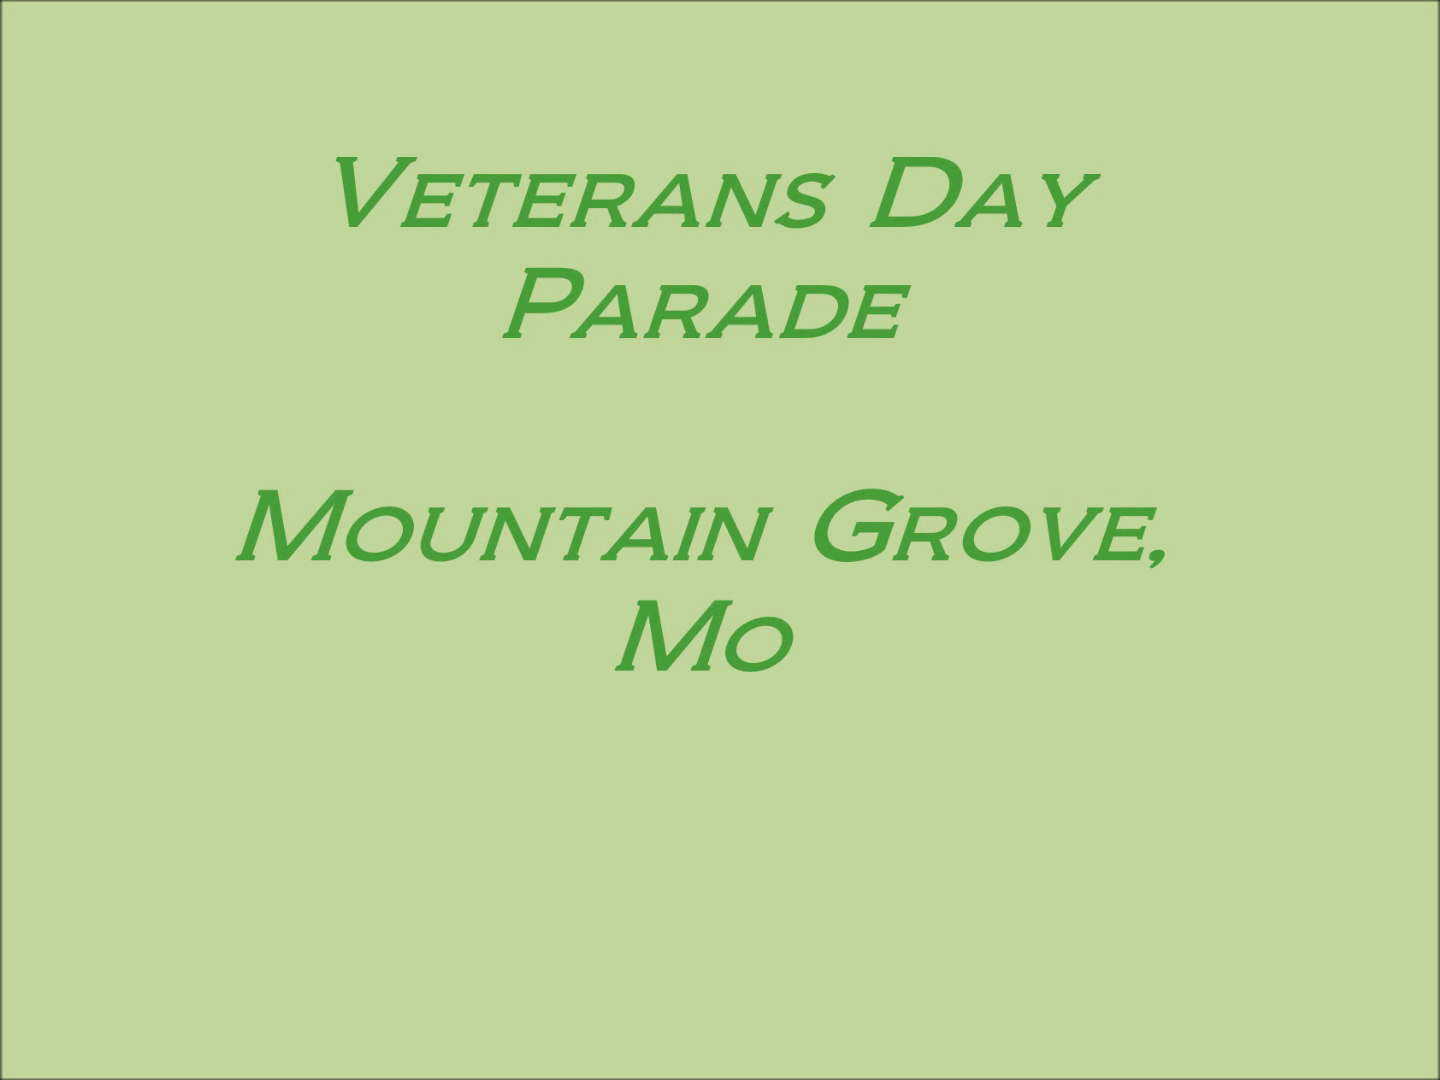 Mtn Grove Veterans Day Parade